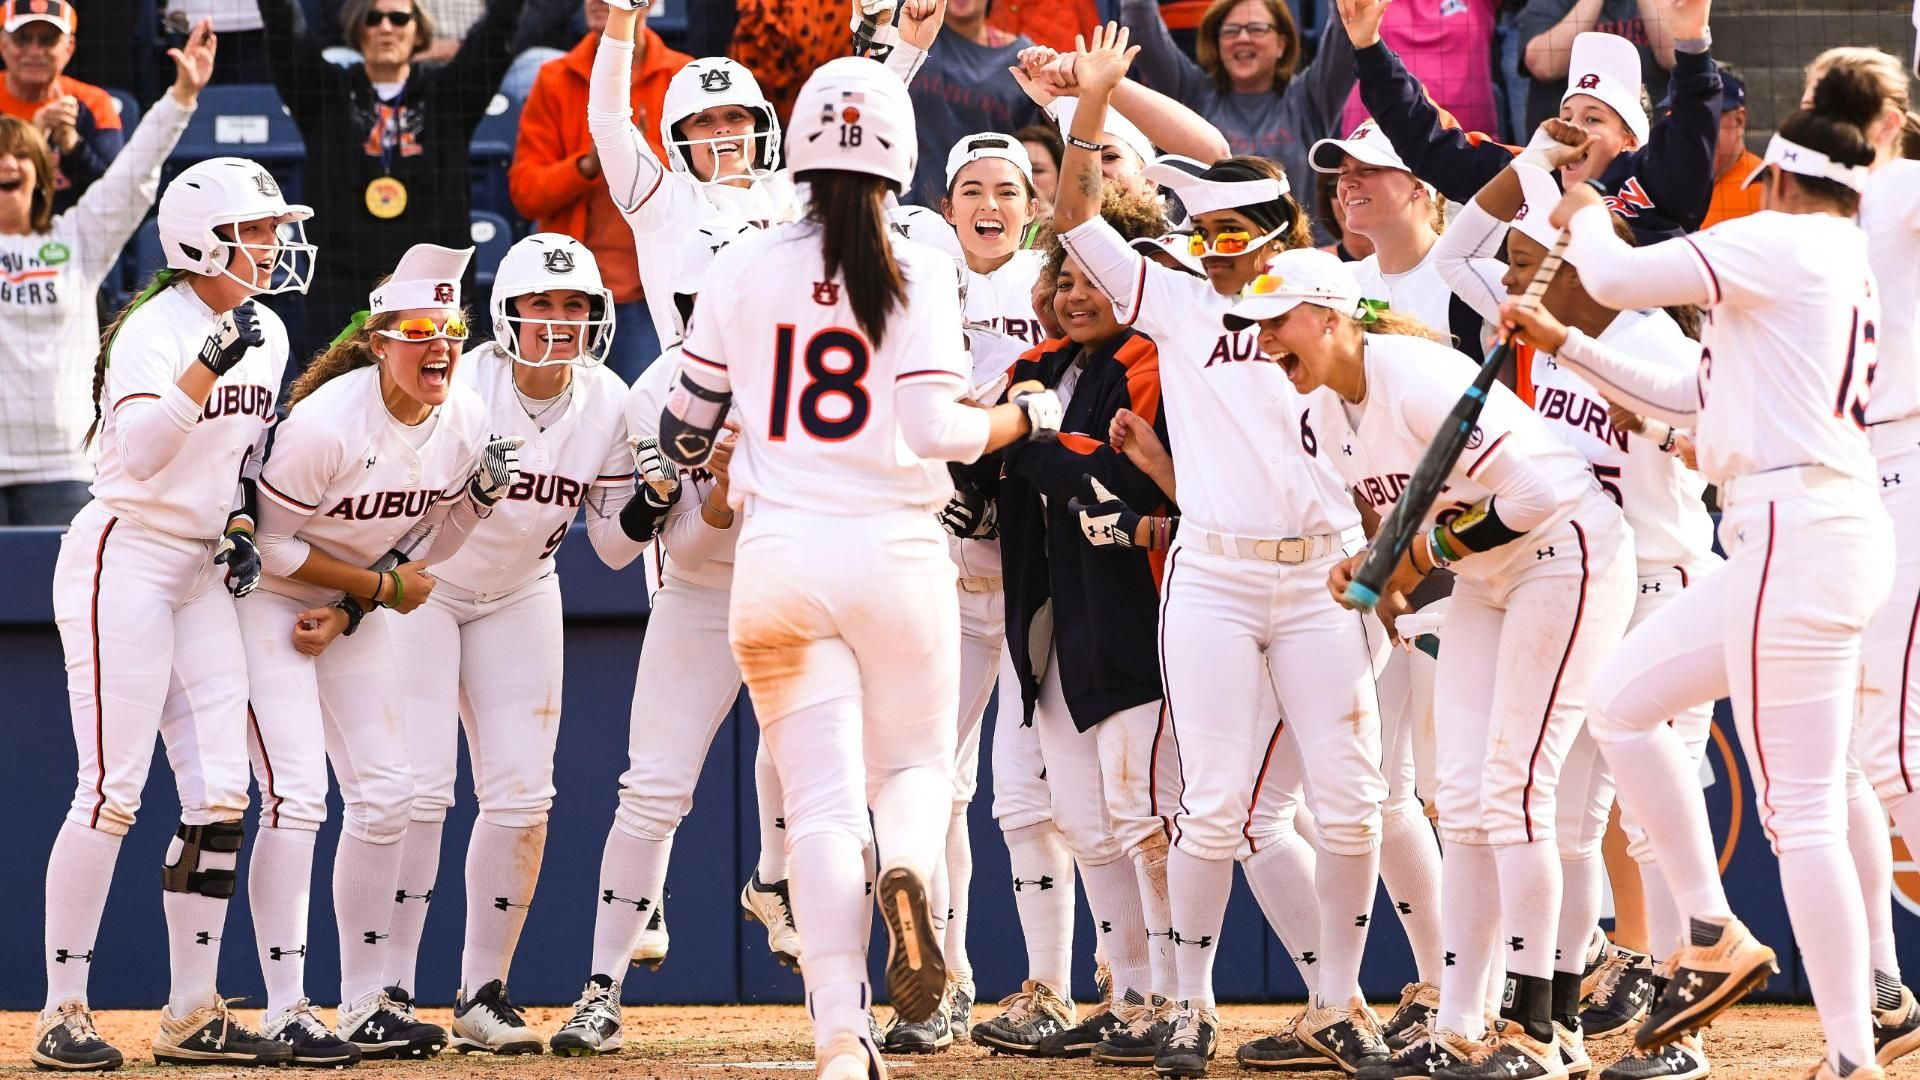 Auburn shocks A&M with walk-off grand slam